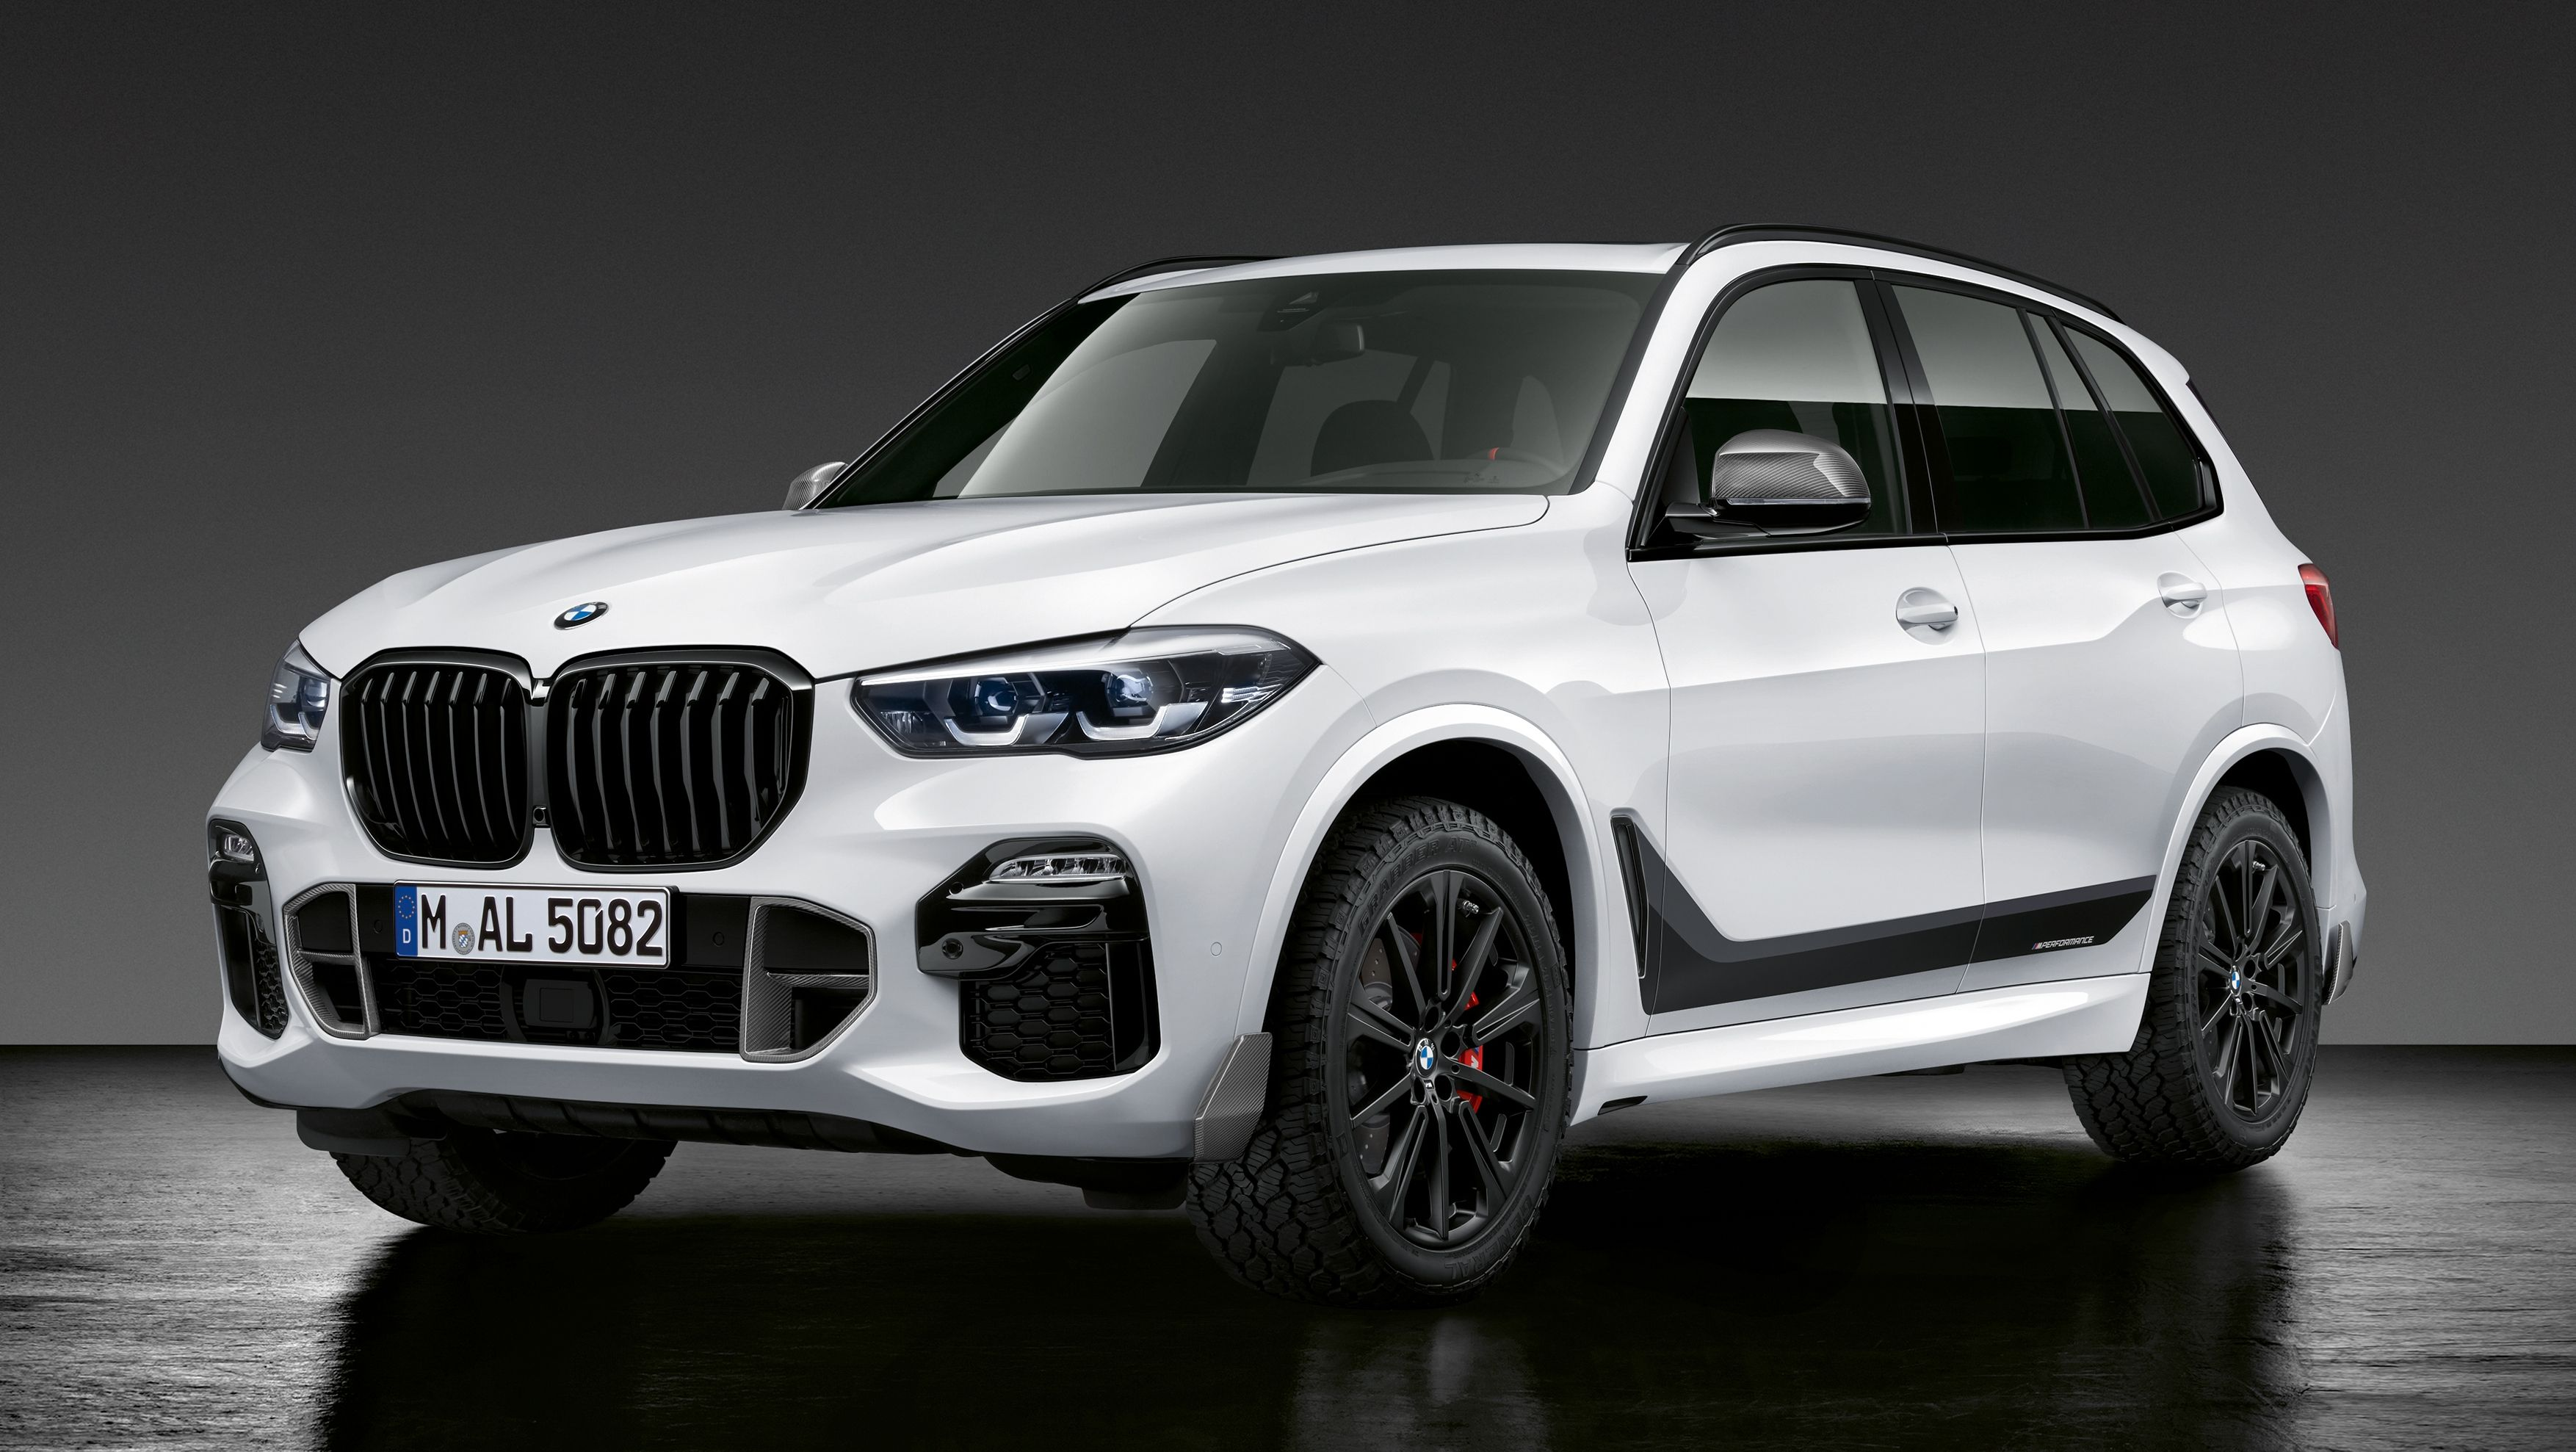 2019 Bmw X5 With M Performance Parts Top Speed Bmw Bmw X5 Super Cars